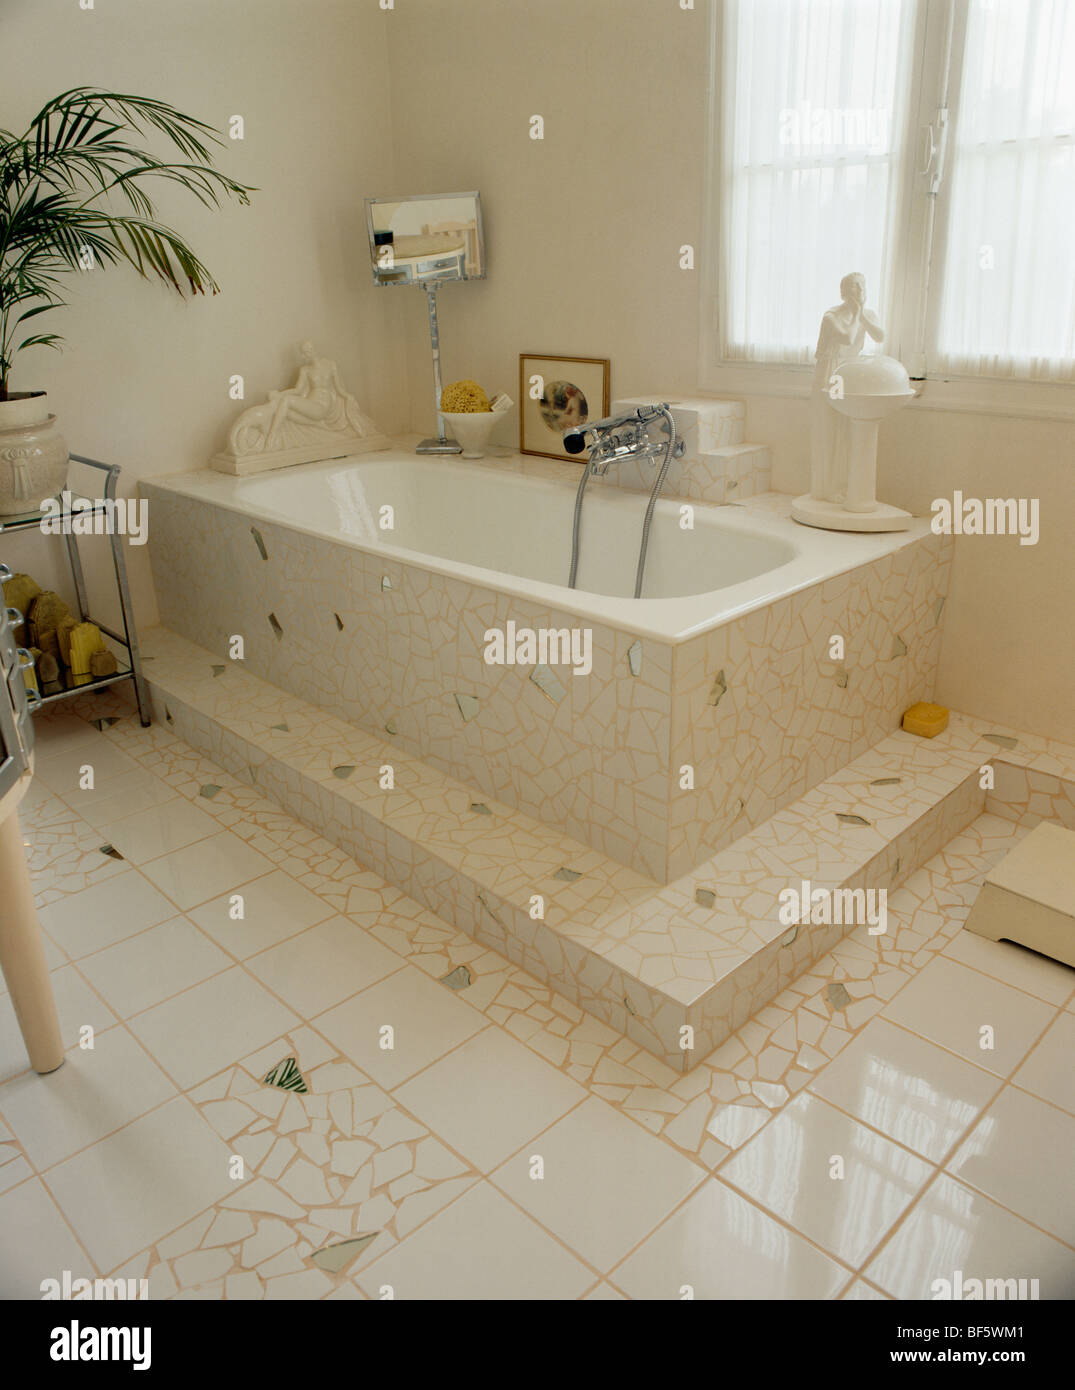 White and mirror-mosaic floor and bath surround in Thirties-style ...